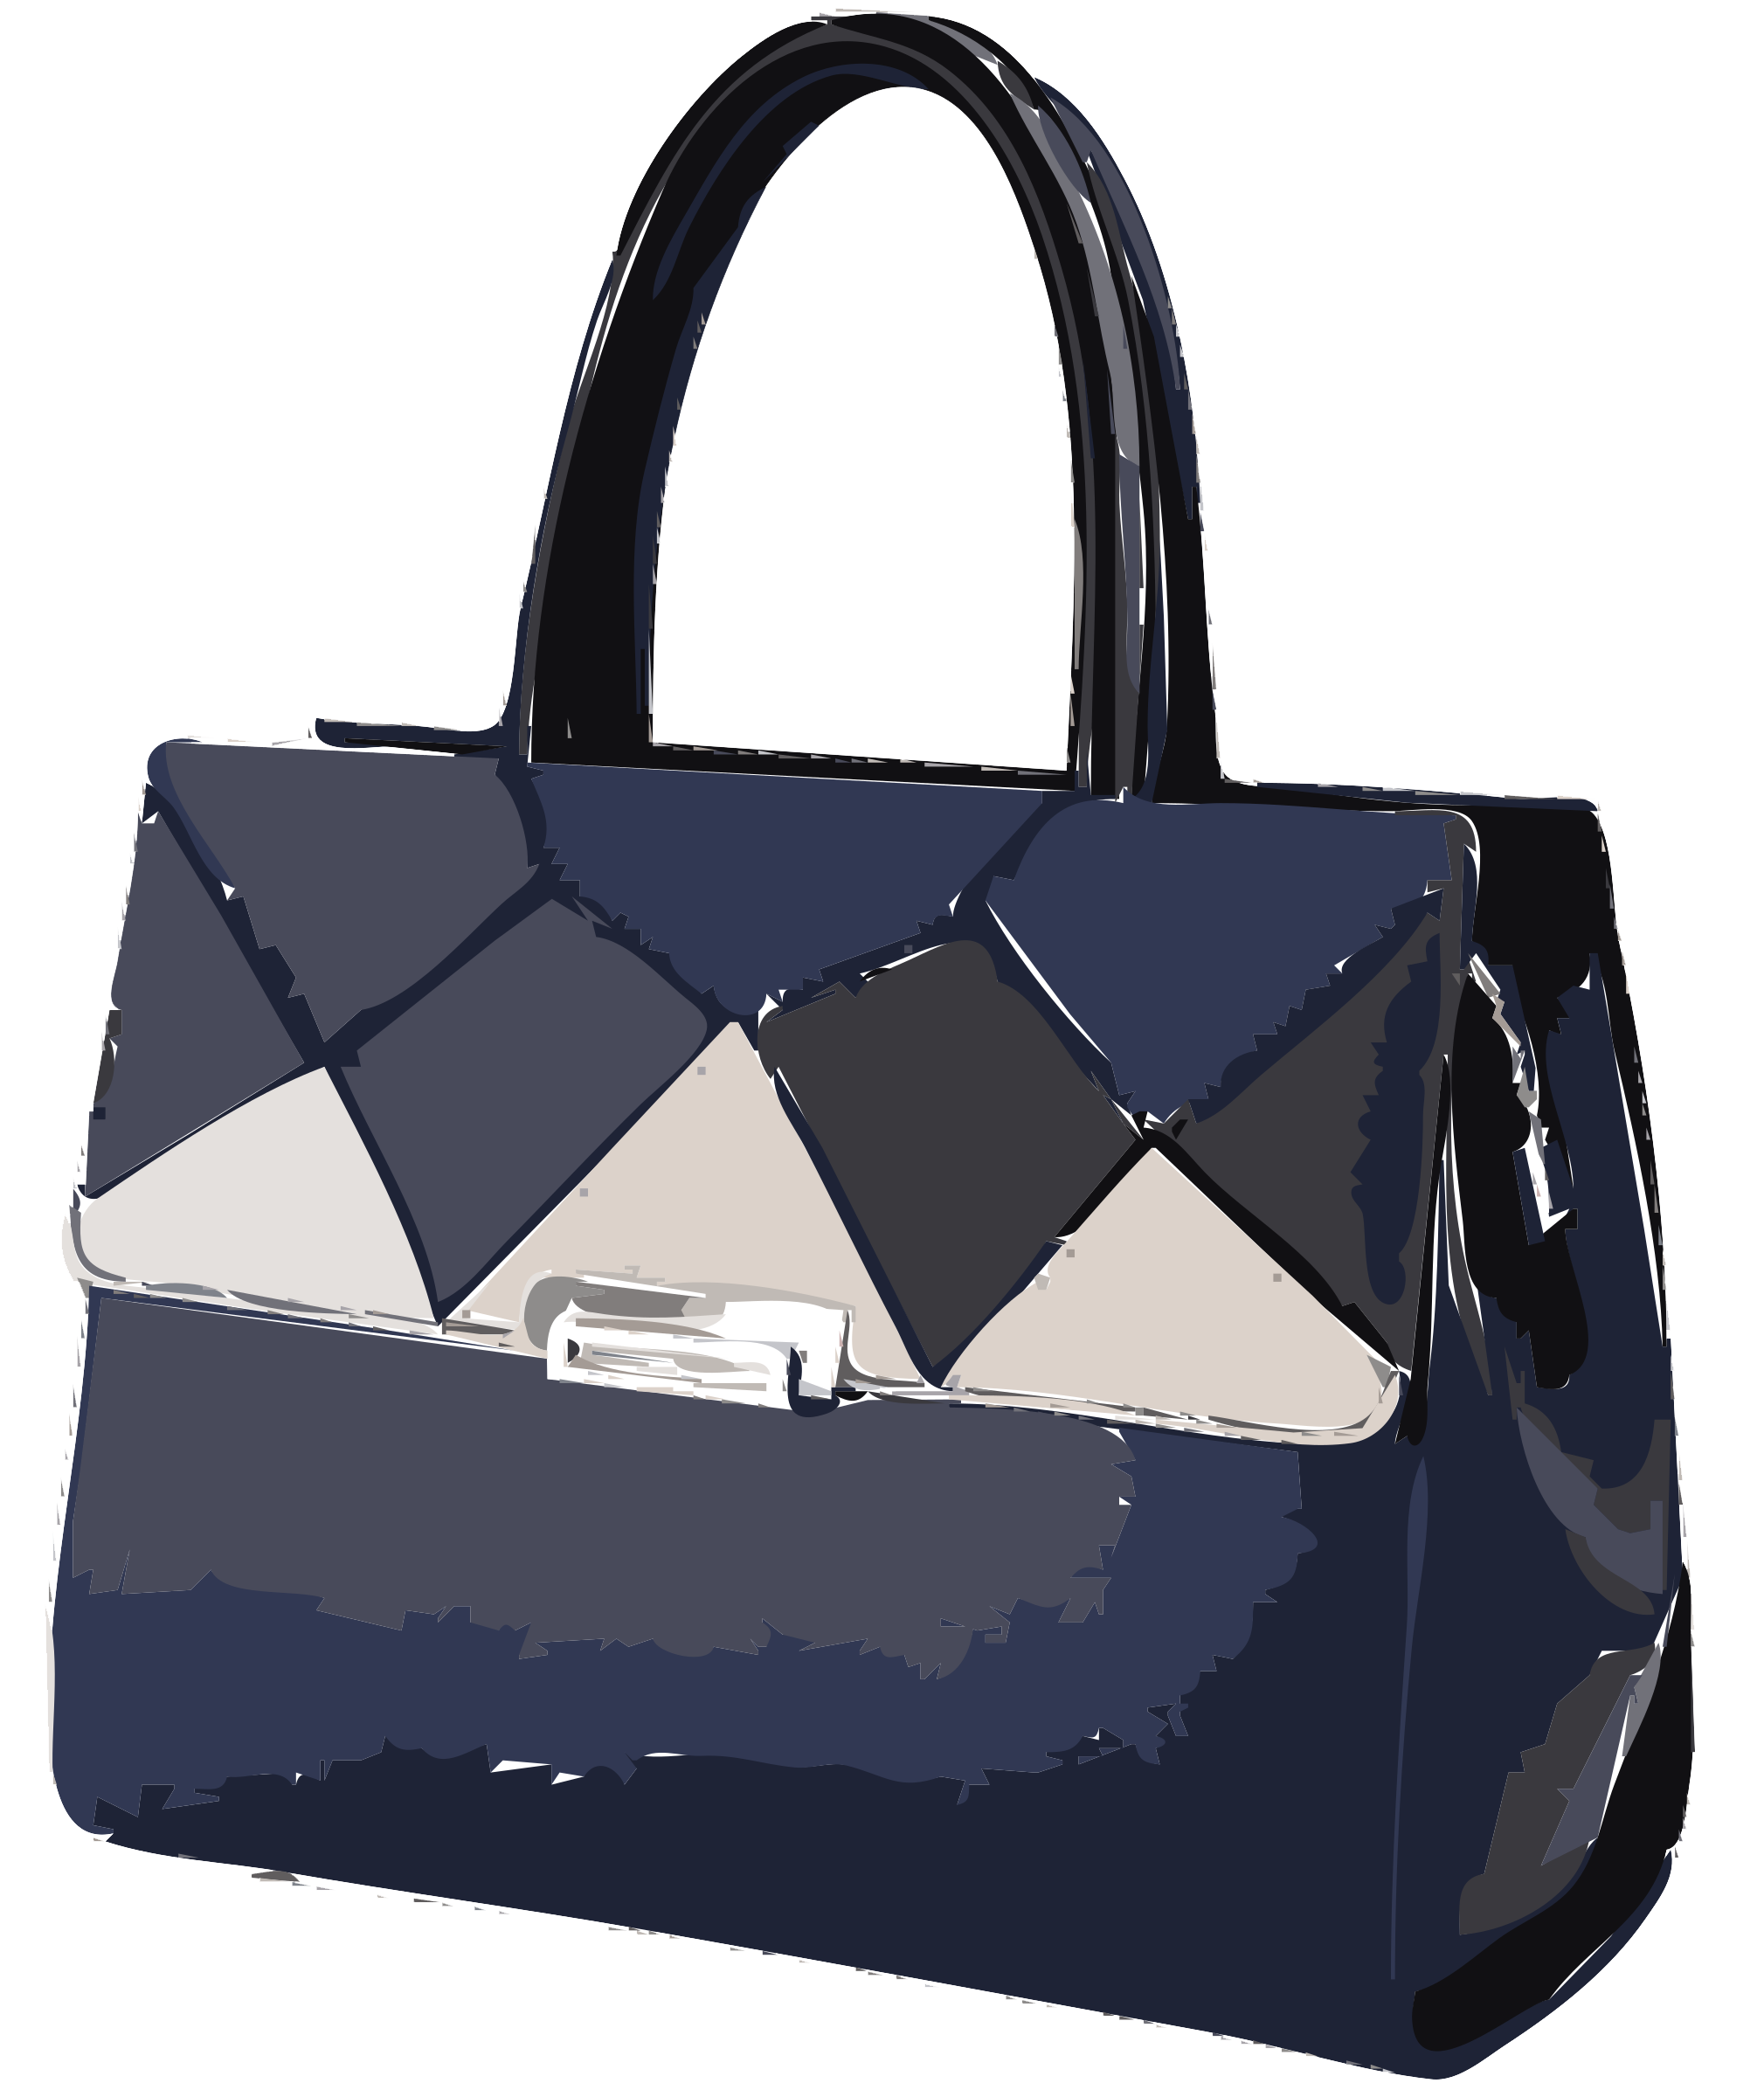 Download Purse PNG Clipart For Designing Projects 1.